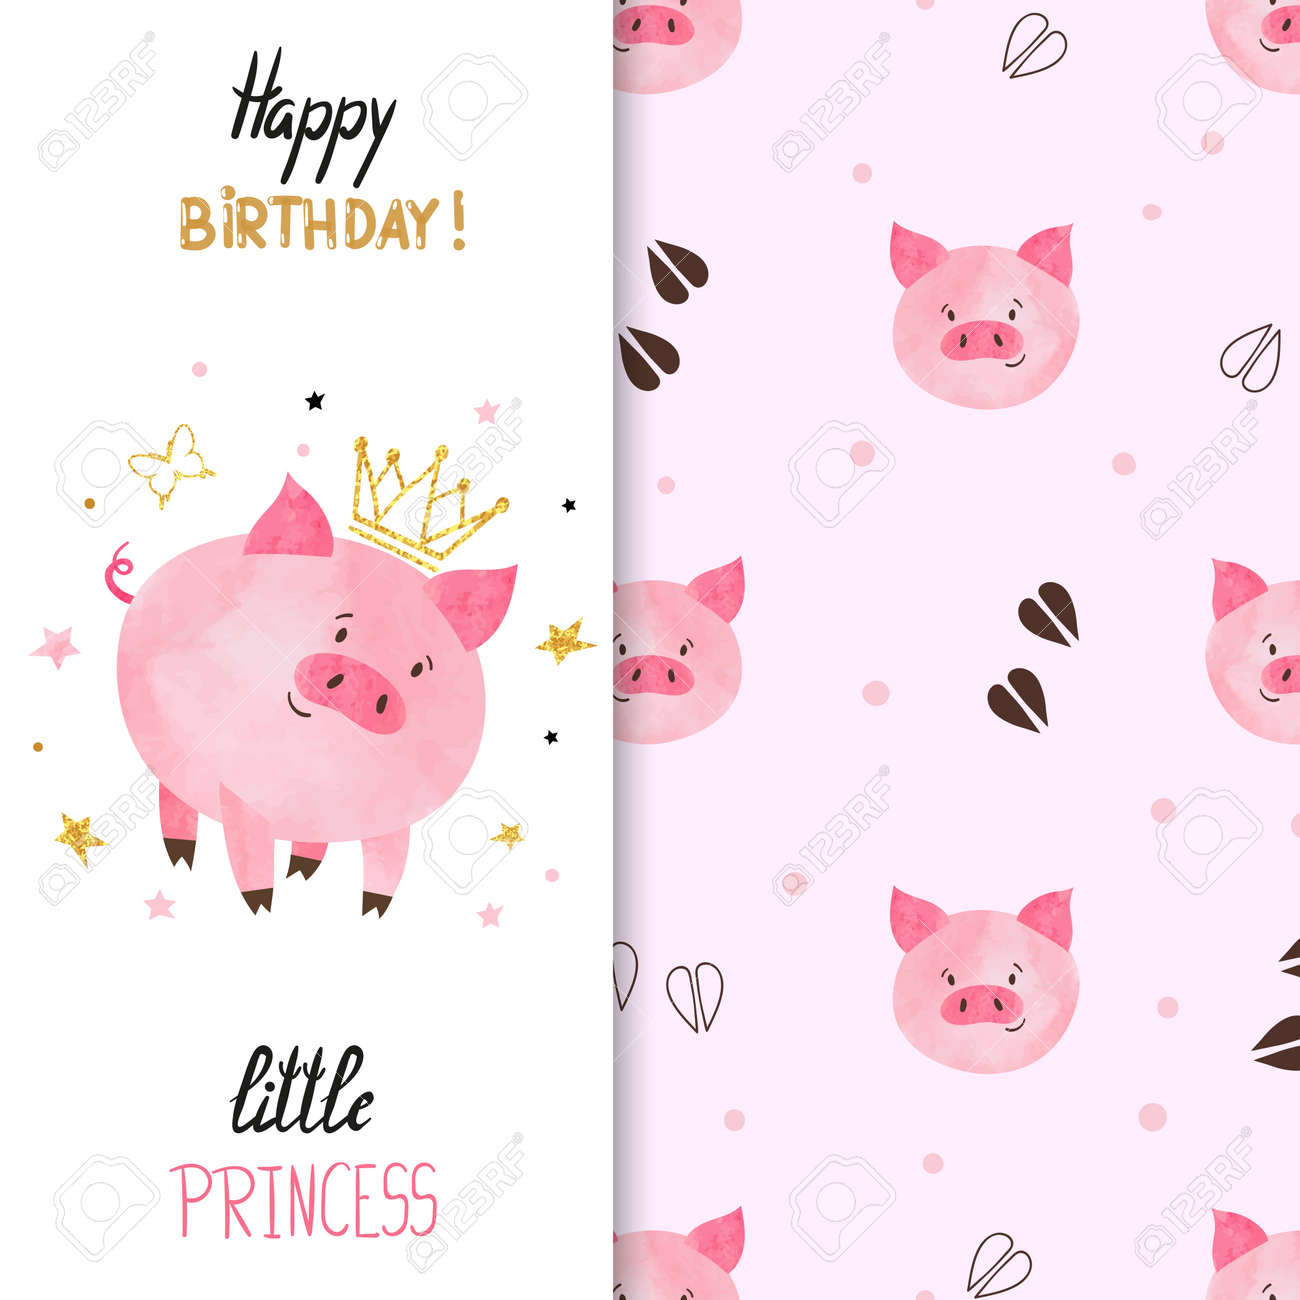 Birthday greeting card design for little girl vector illustration birthday greeting card design for little girl vector illustration of cute little princess pig kristyandbryce Images